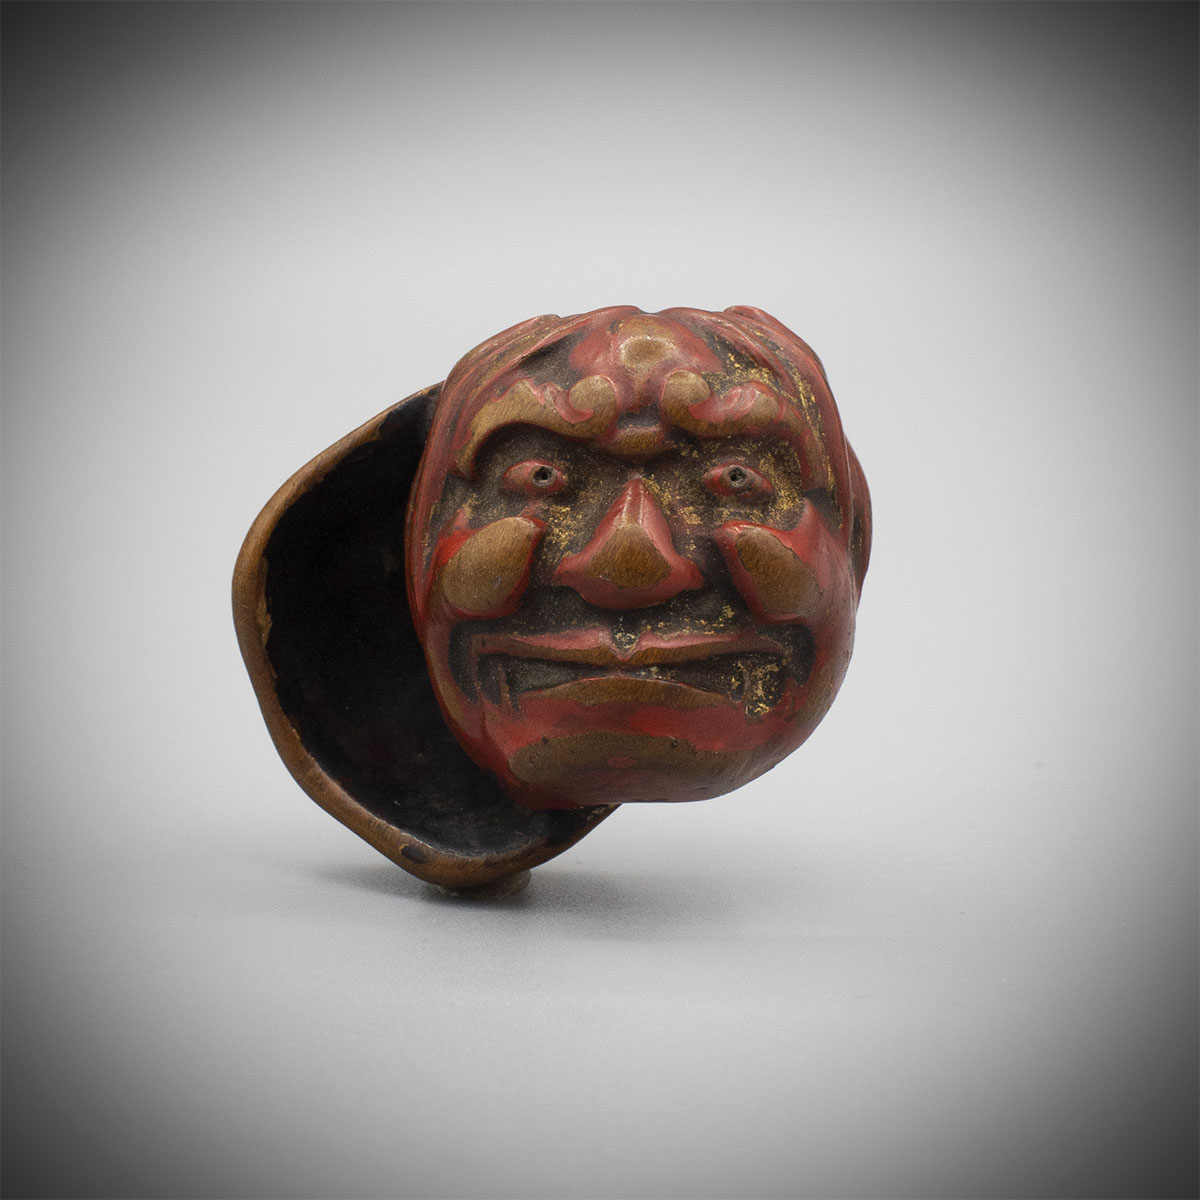 Worn Lacquered Wood Netsuke of Two Masks MR3473_v.1